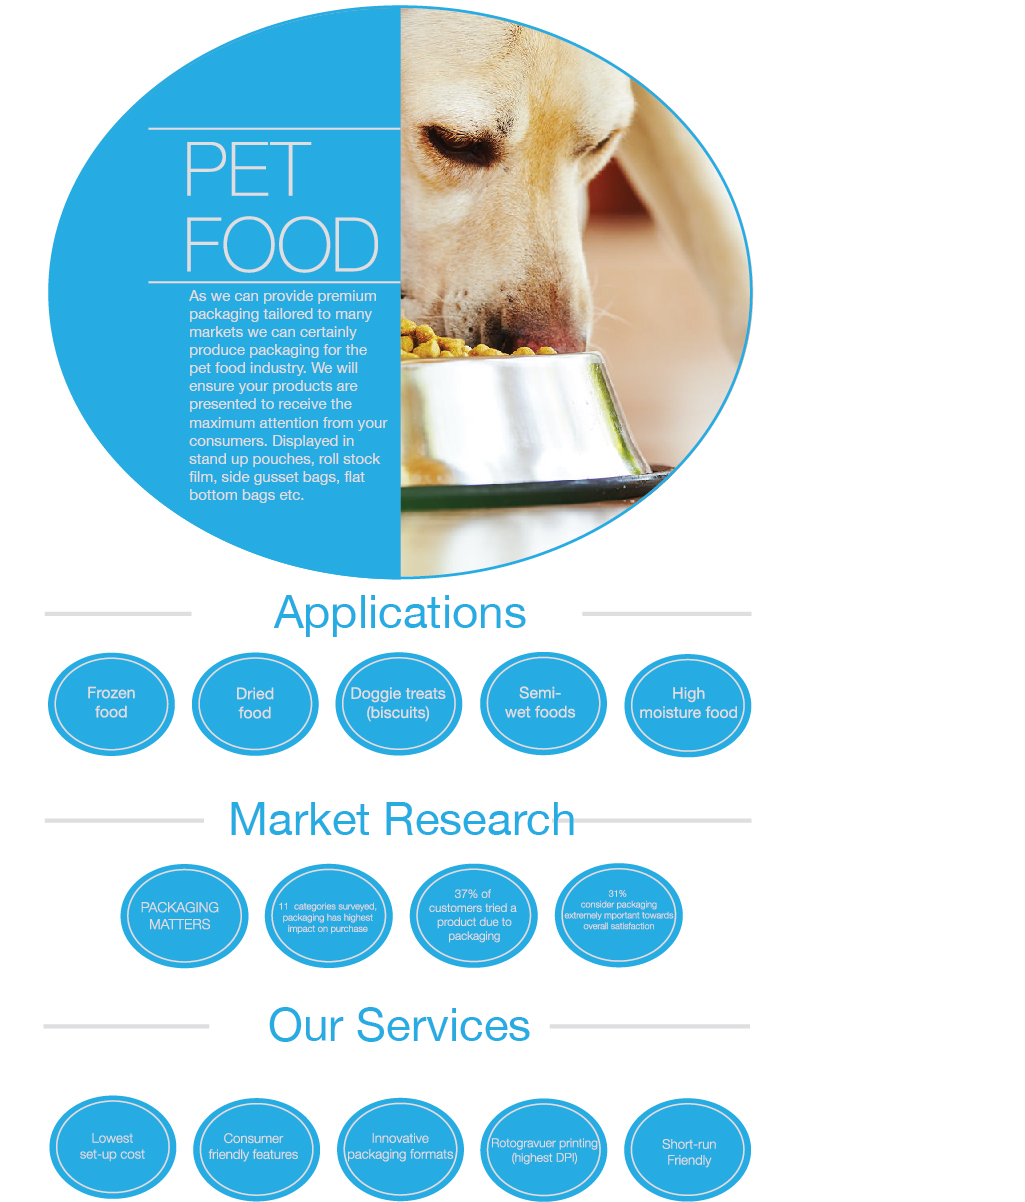 pet-food-small.jpg